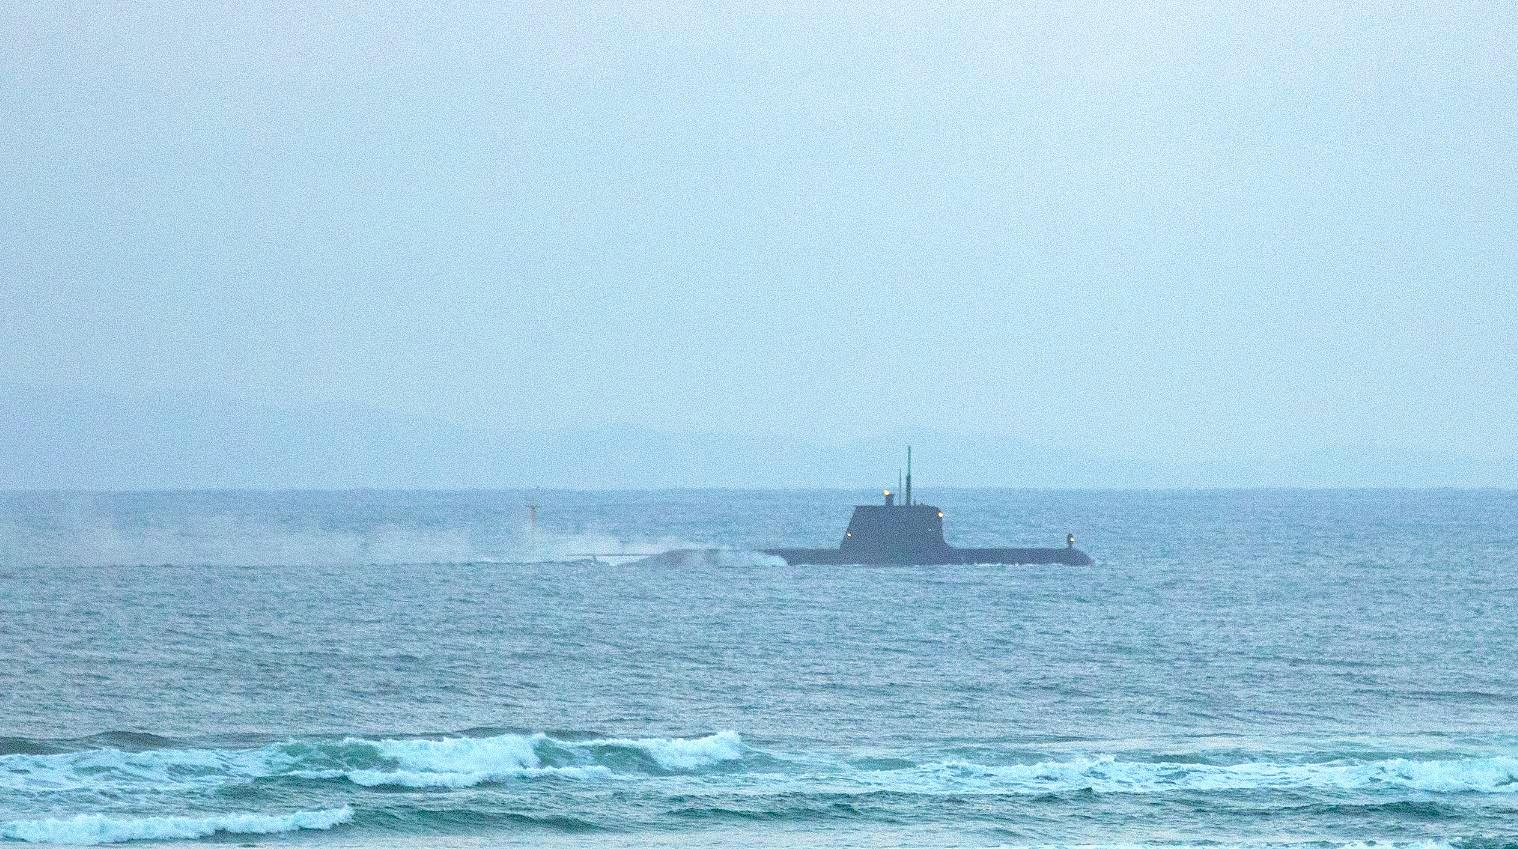 MYSTERY: A submarine was spotted by eagle-eyed Coast photographer Cade Mooney off the coastline this morning.